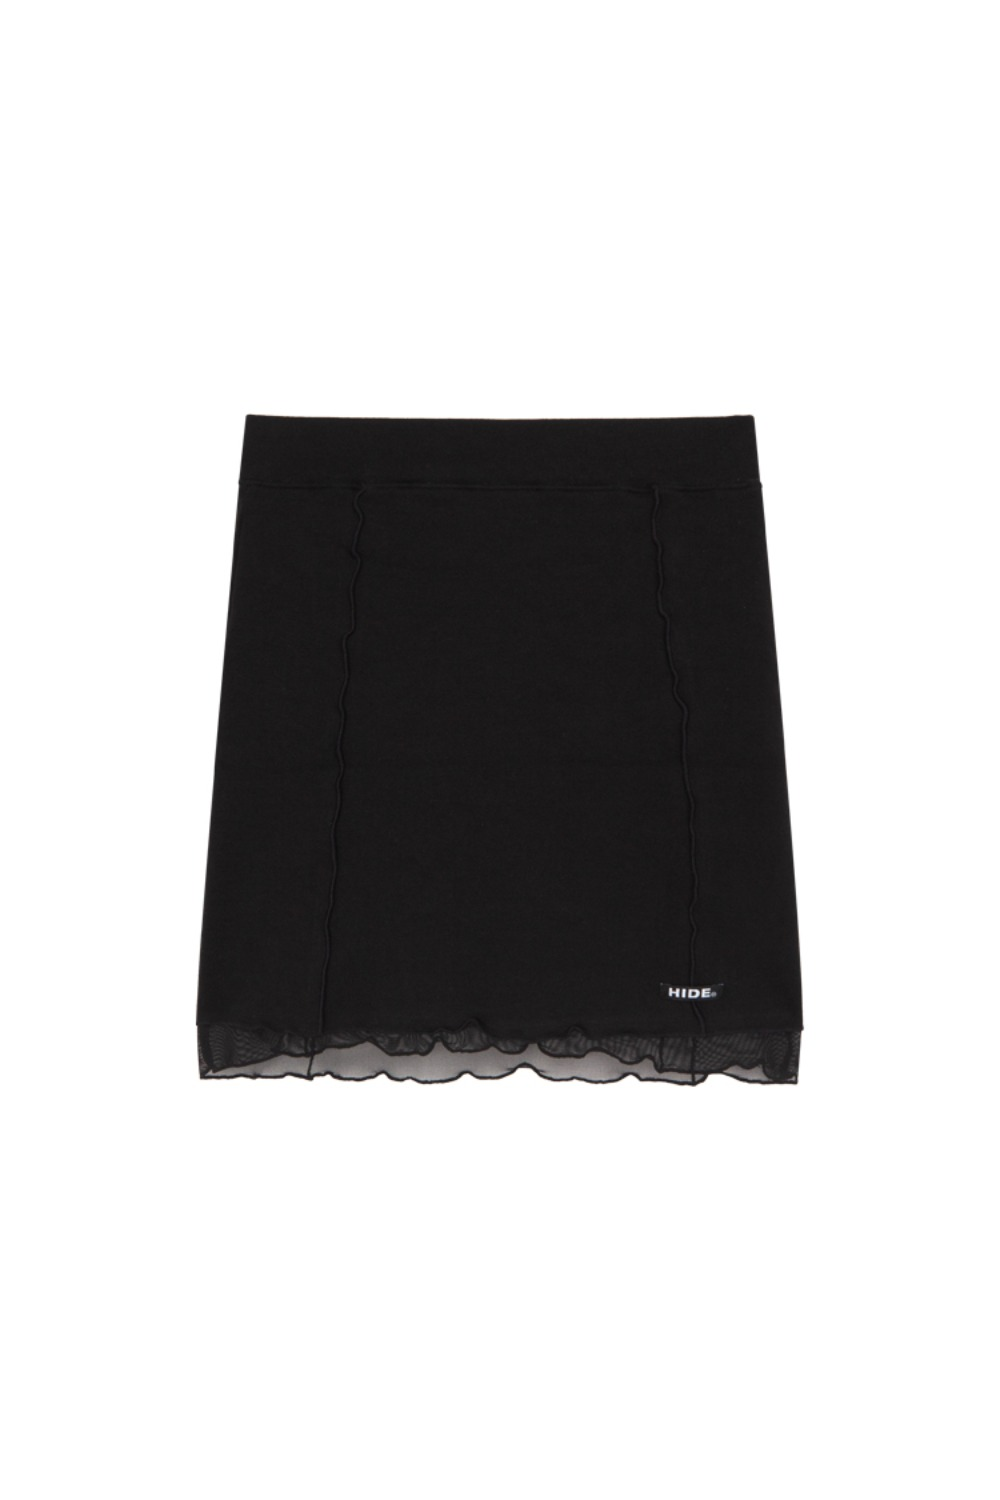 HIDE Lettuce Edge Skirt BLACK